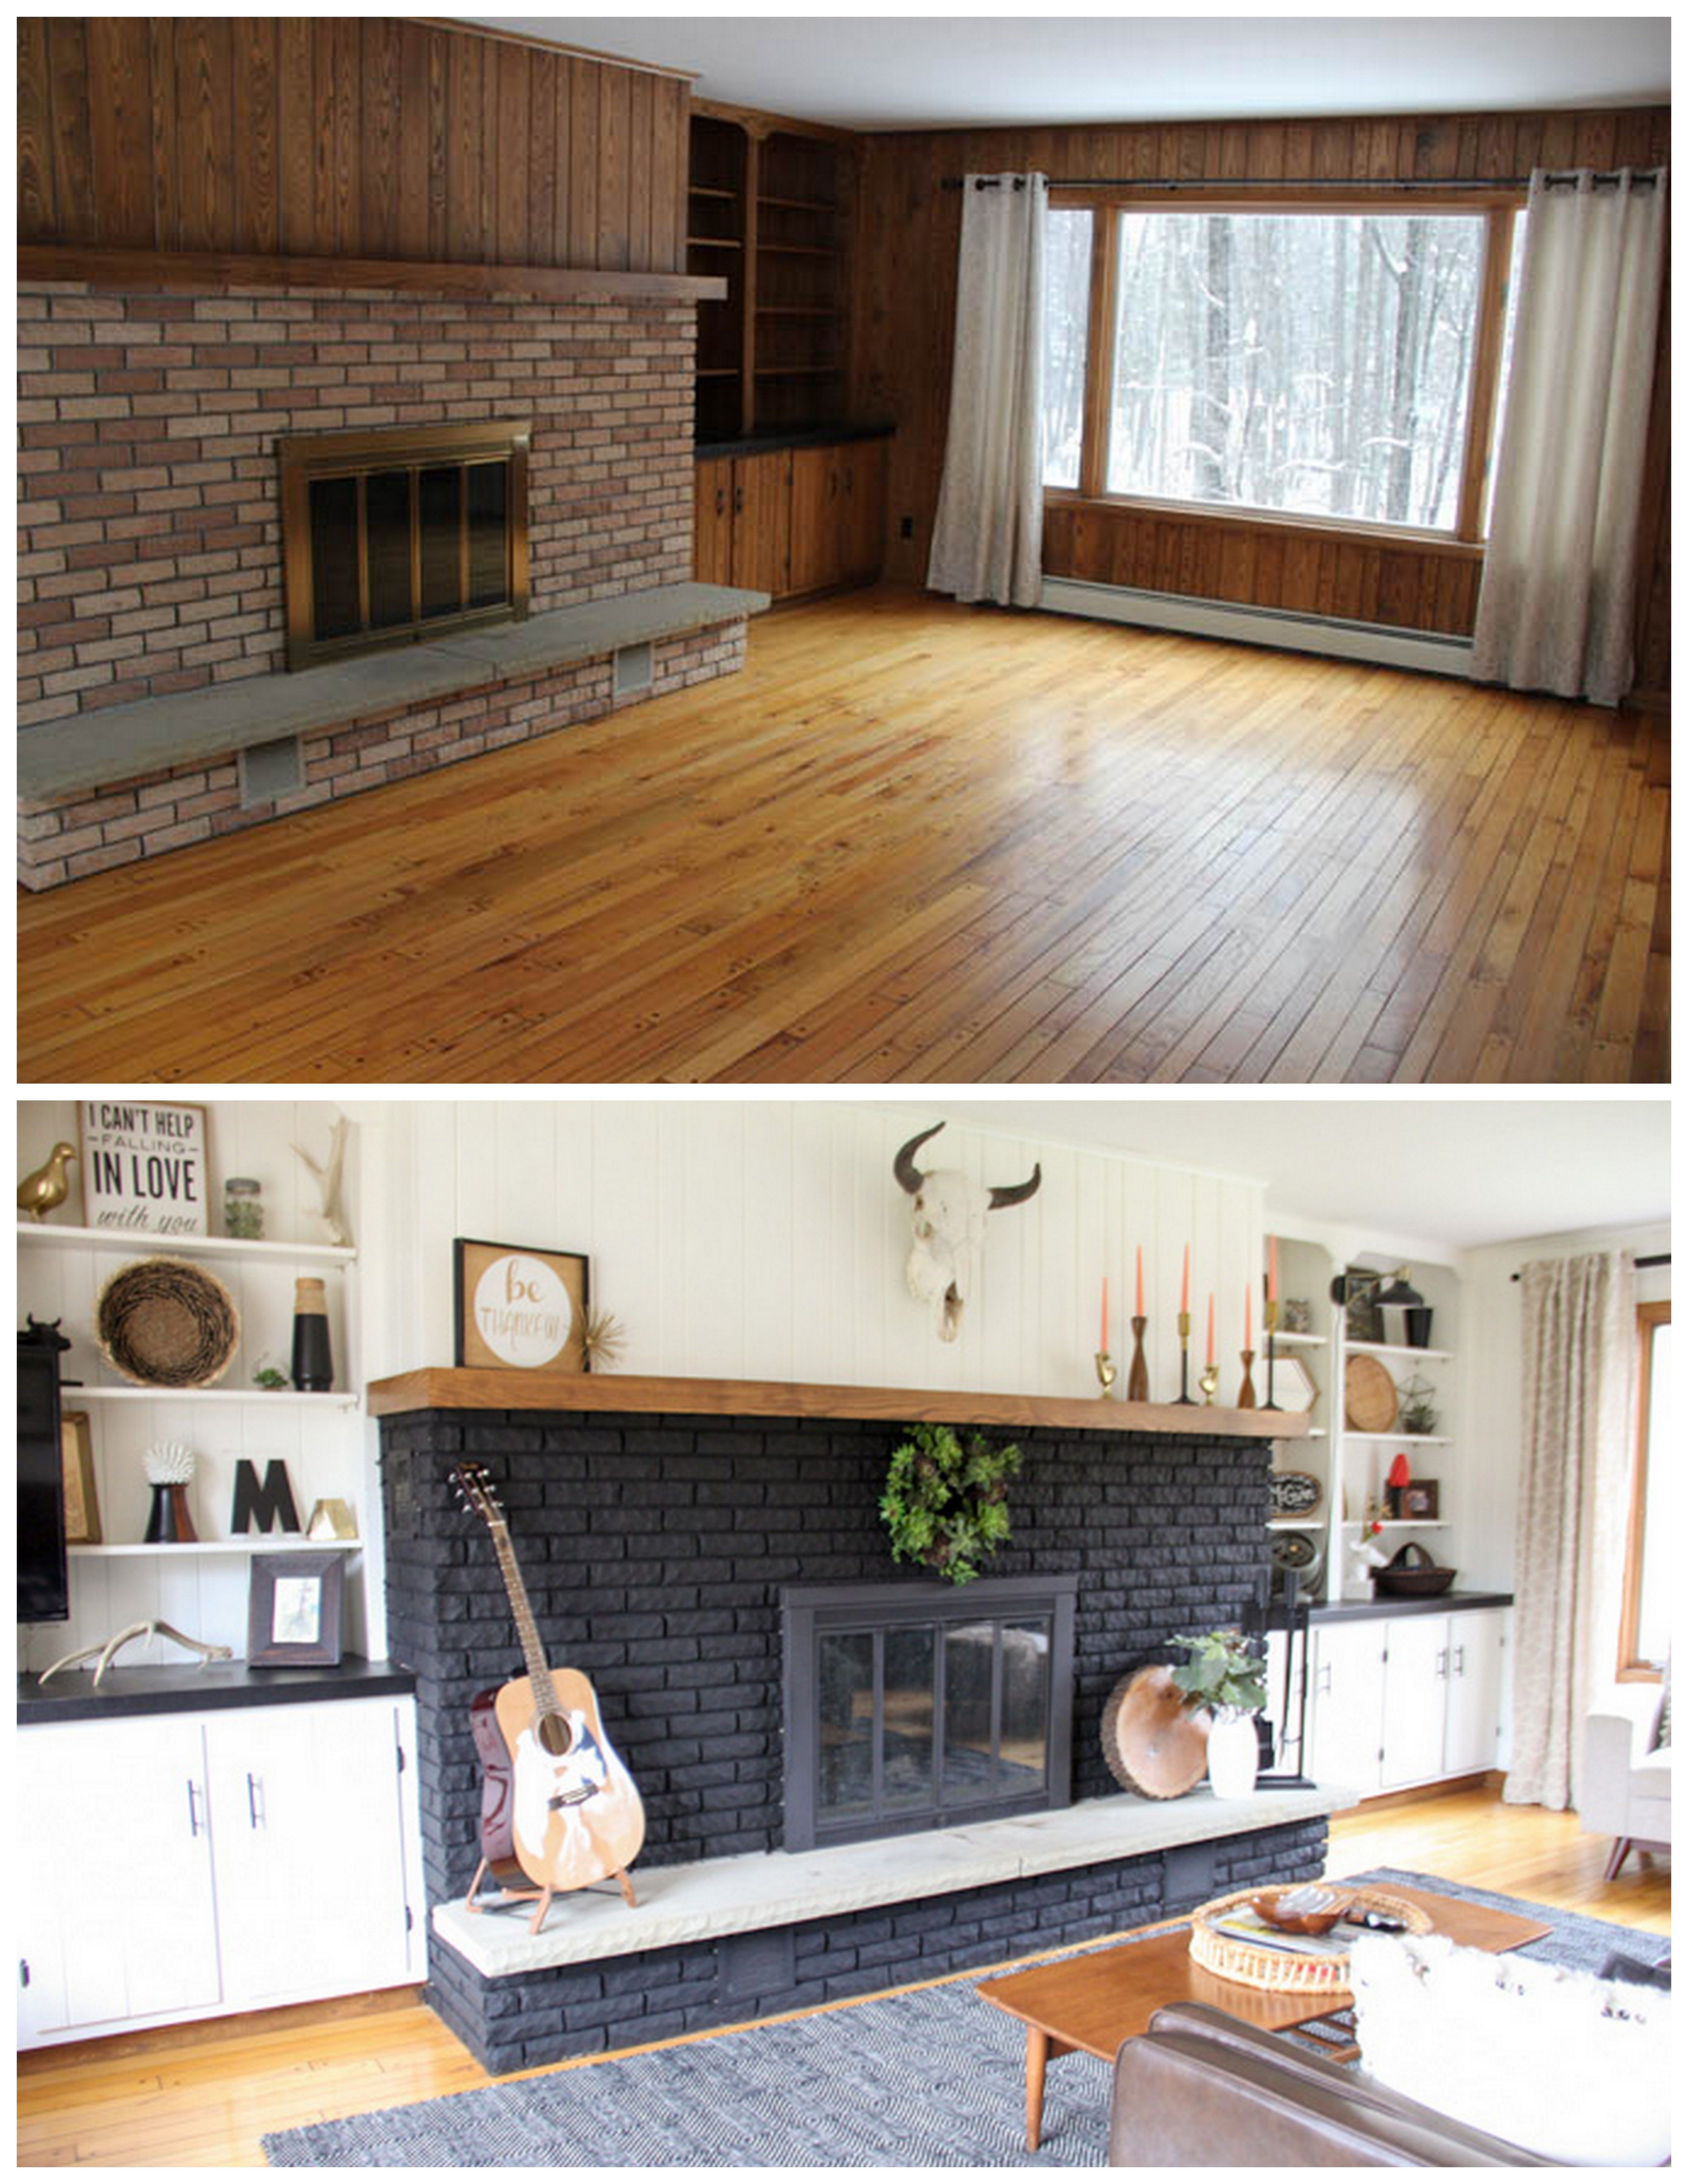 Our Fixer Upper One Year Later Living Room Remodel Home Remodeling Room Remodeling #small #living #room #makeover #before #and #after